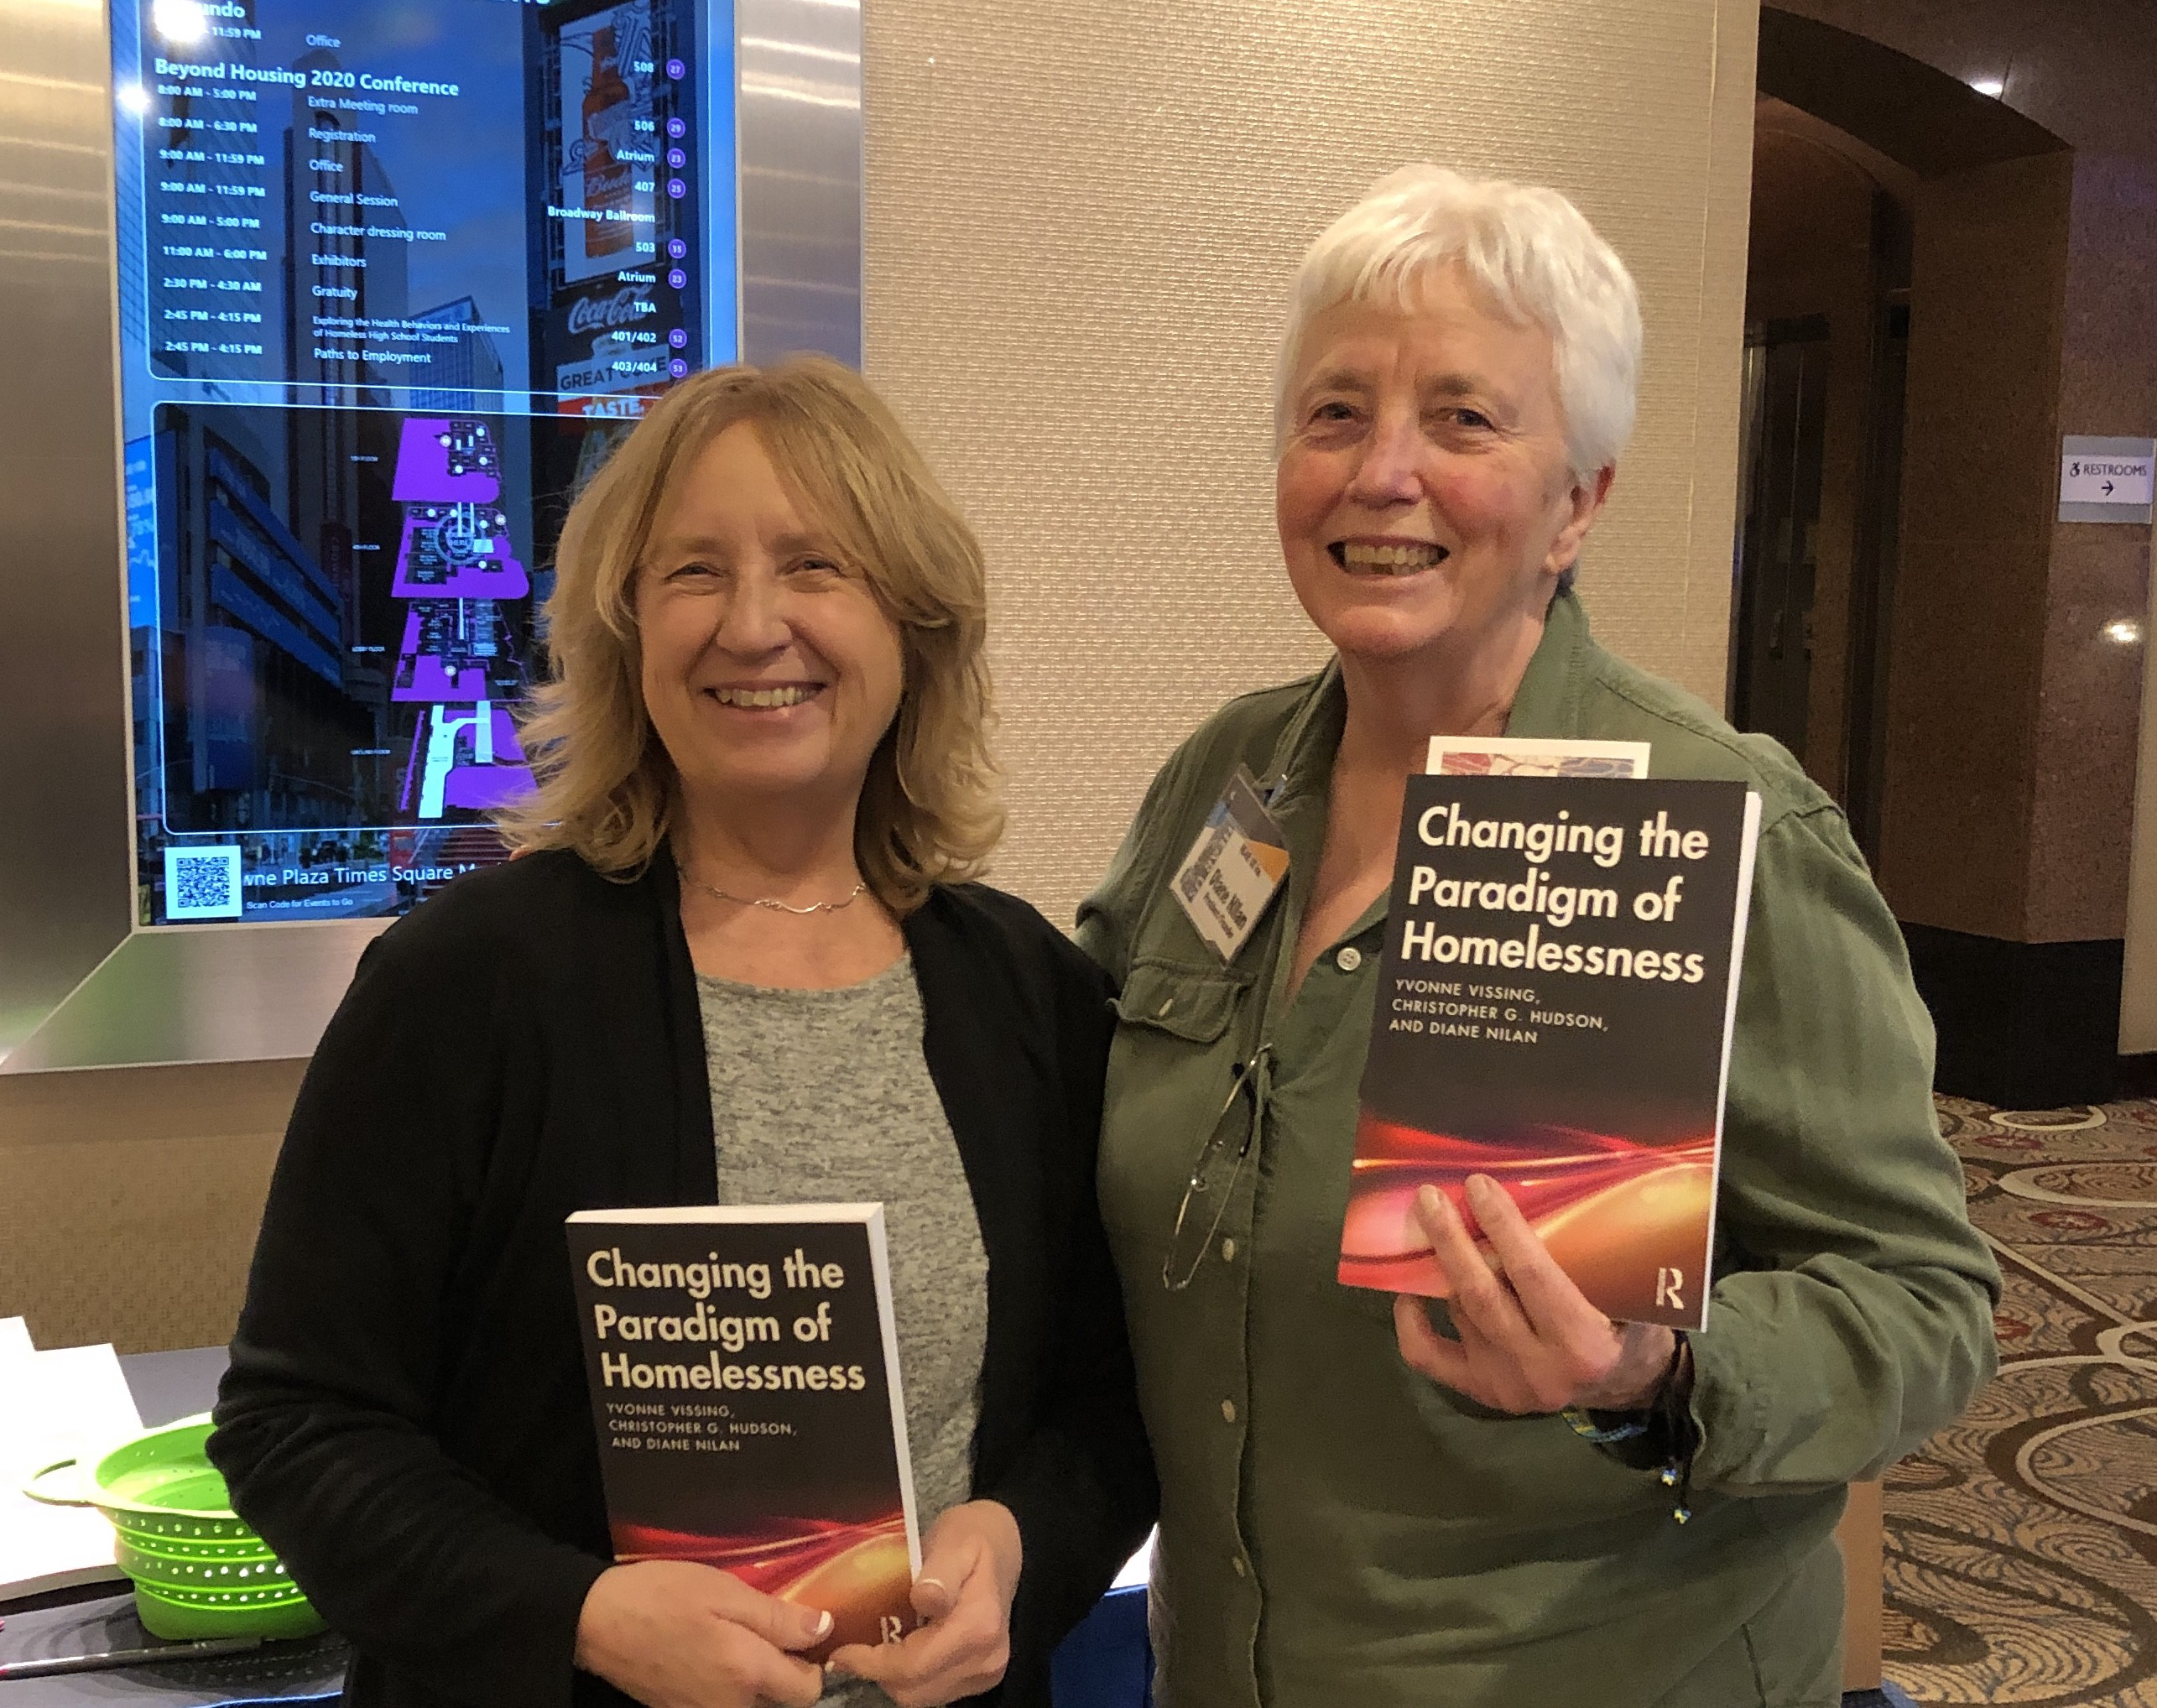 yvonne vissing (left) and diane nilan with their new textbook, changing the paradigm of homelessnss